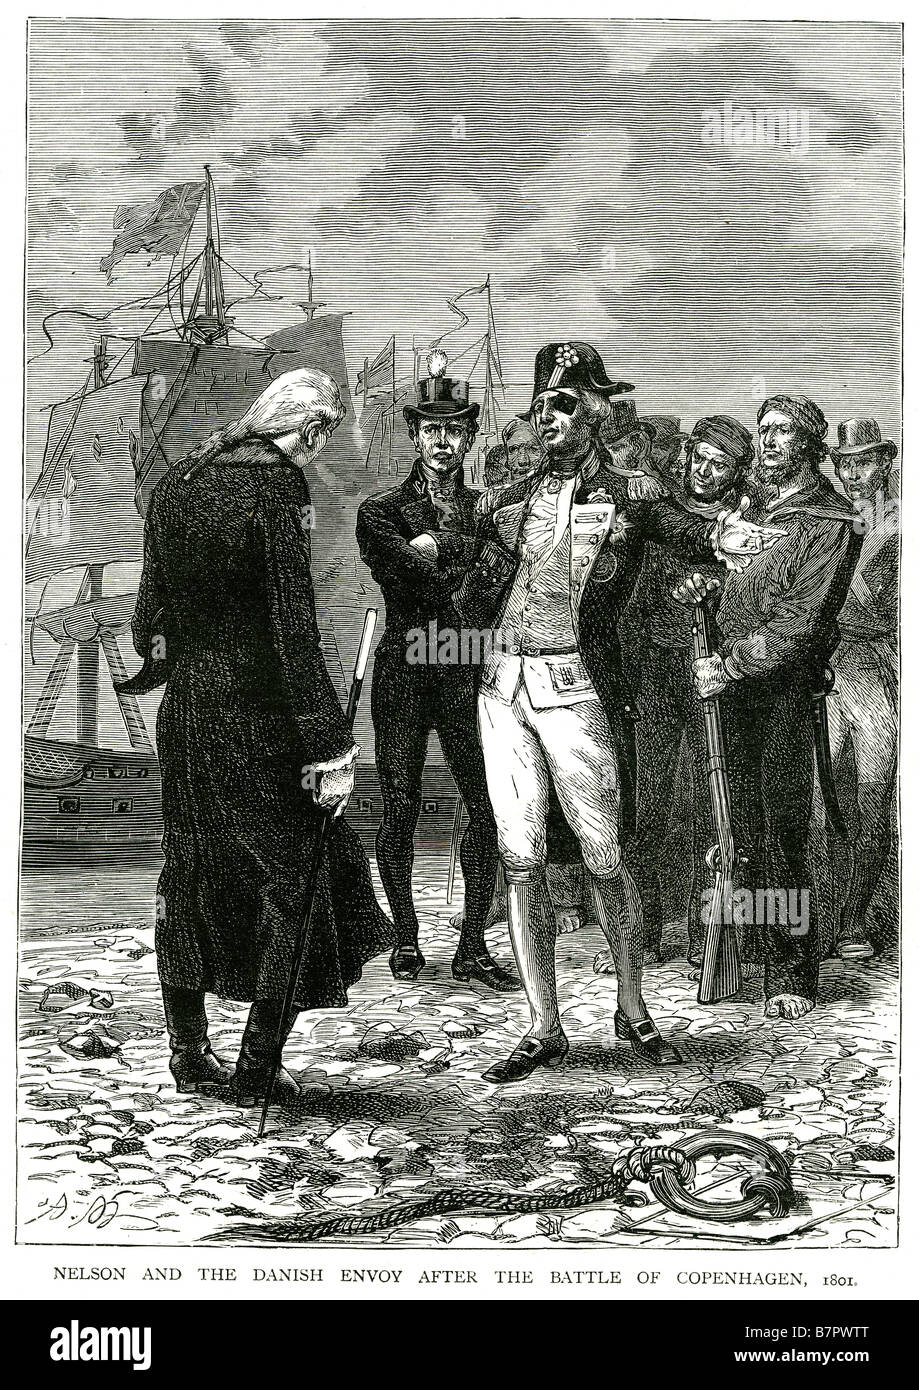 nelson and the danish envoy after the battle of copenhagen 1801 In the  Battle of Copenhagen (Danish: Slaget på Reden), a British